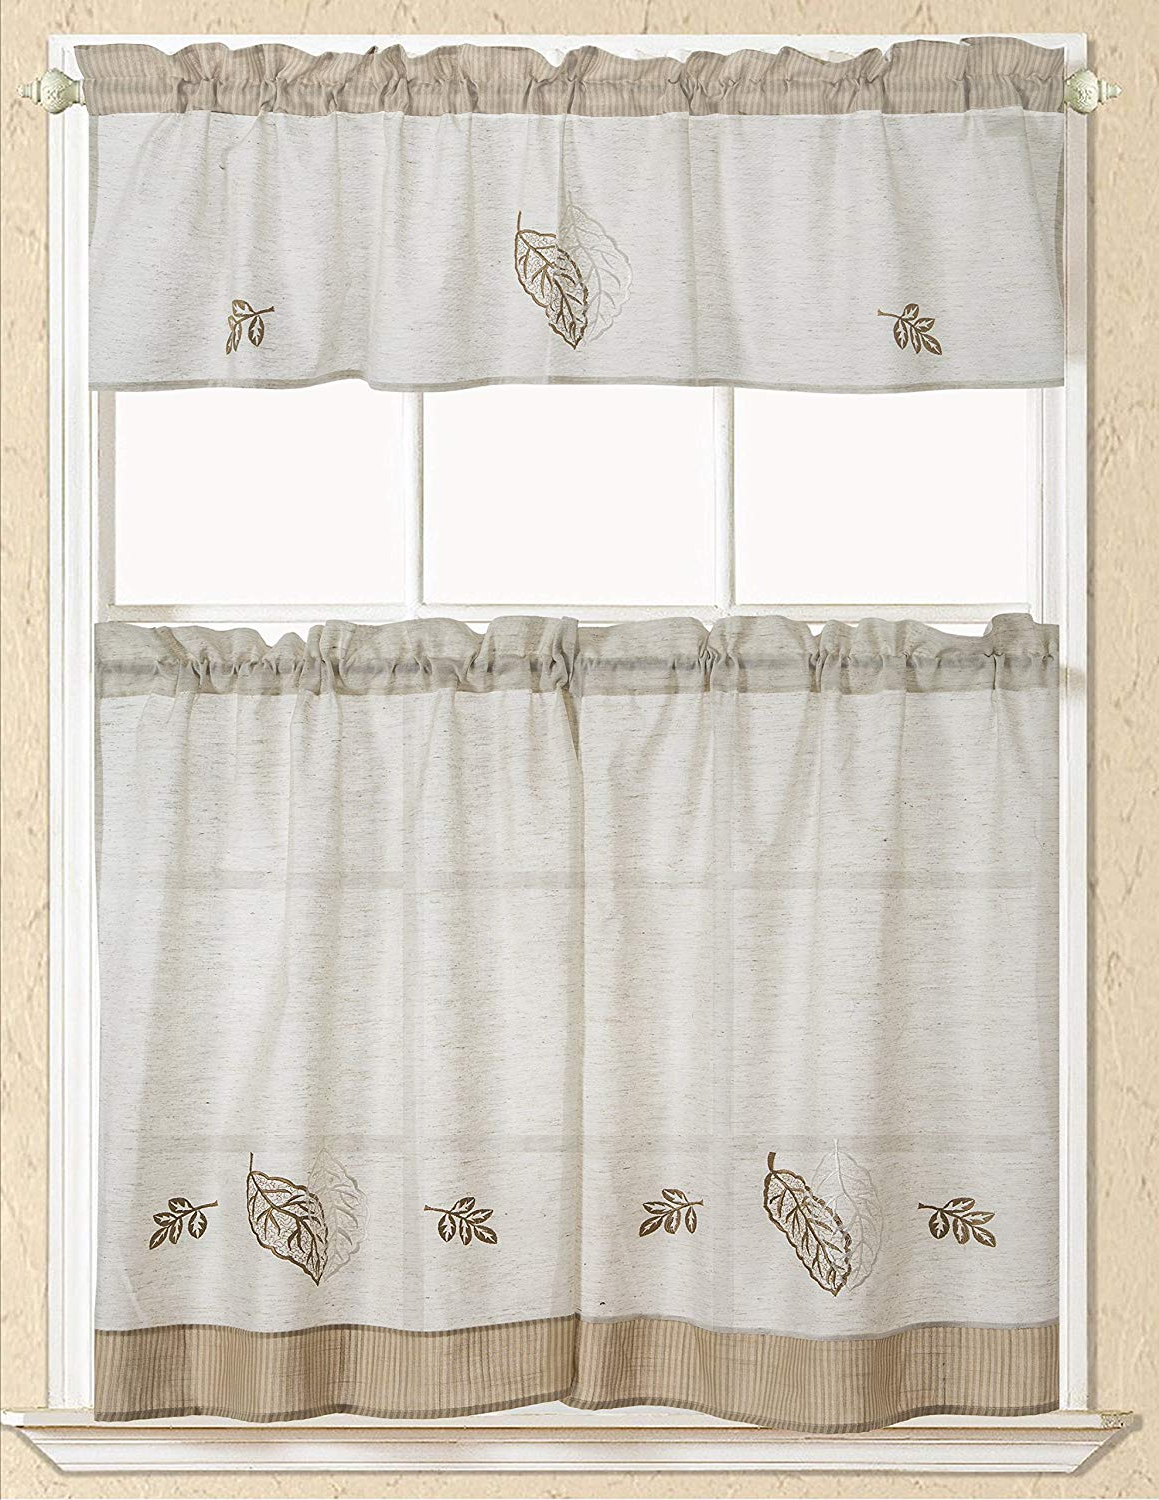 Rt Designers Collection Rt Designers Spring Rustic Leaf Embroidered Kitchen  Curtain, 1 Straight Valance 58 Inch X 15 Inch & 2 Tiers 30 Inch X 36 Inch, With 2020 Scroll Leaf 3 Piece Curtain Tier And Valance Sets (View 12 of 20)